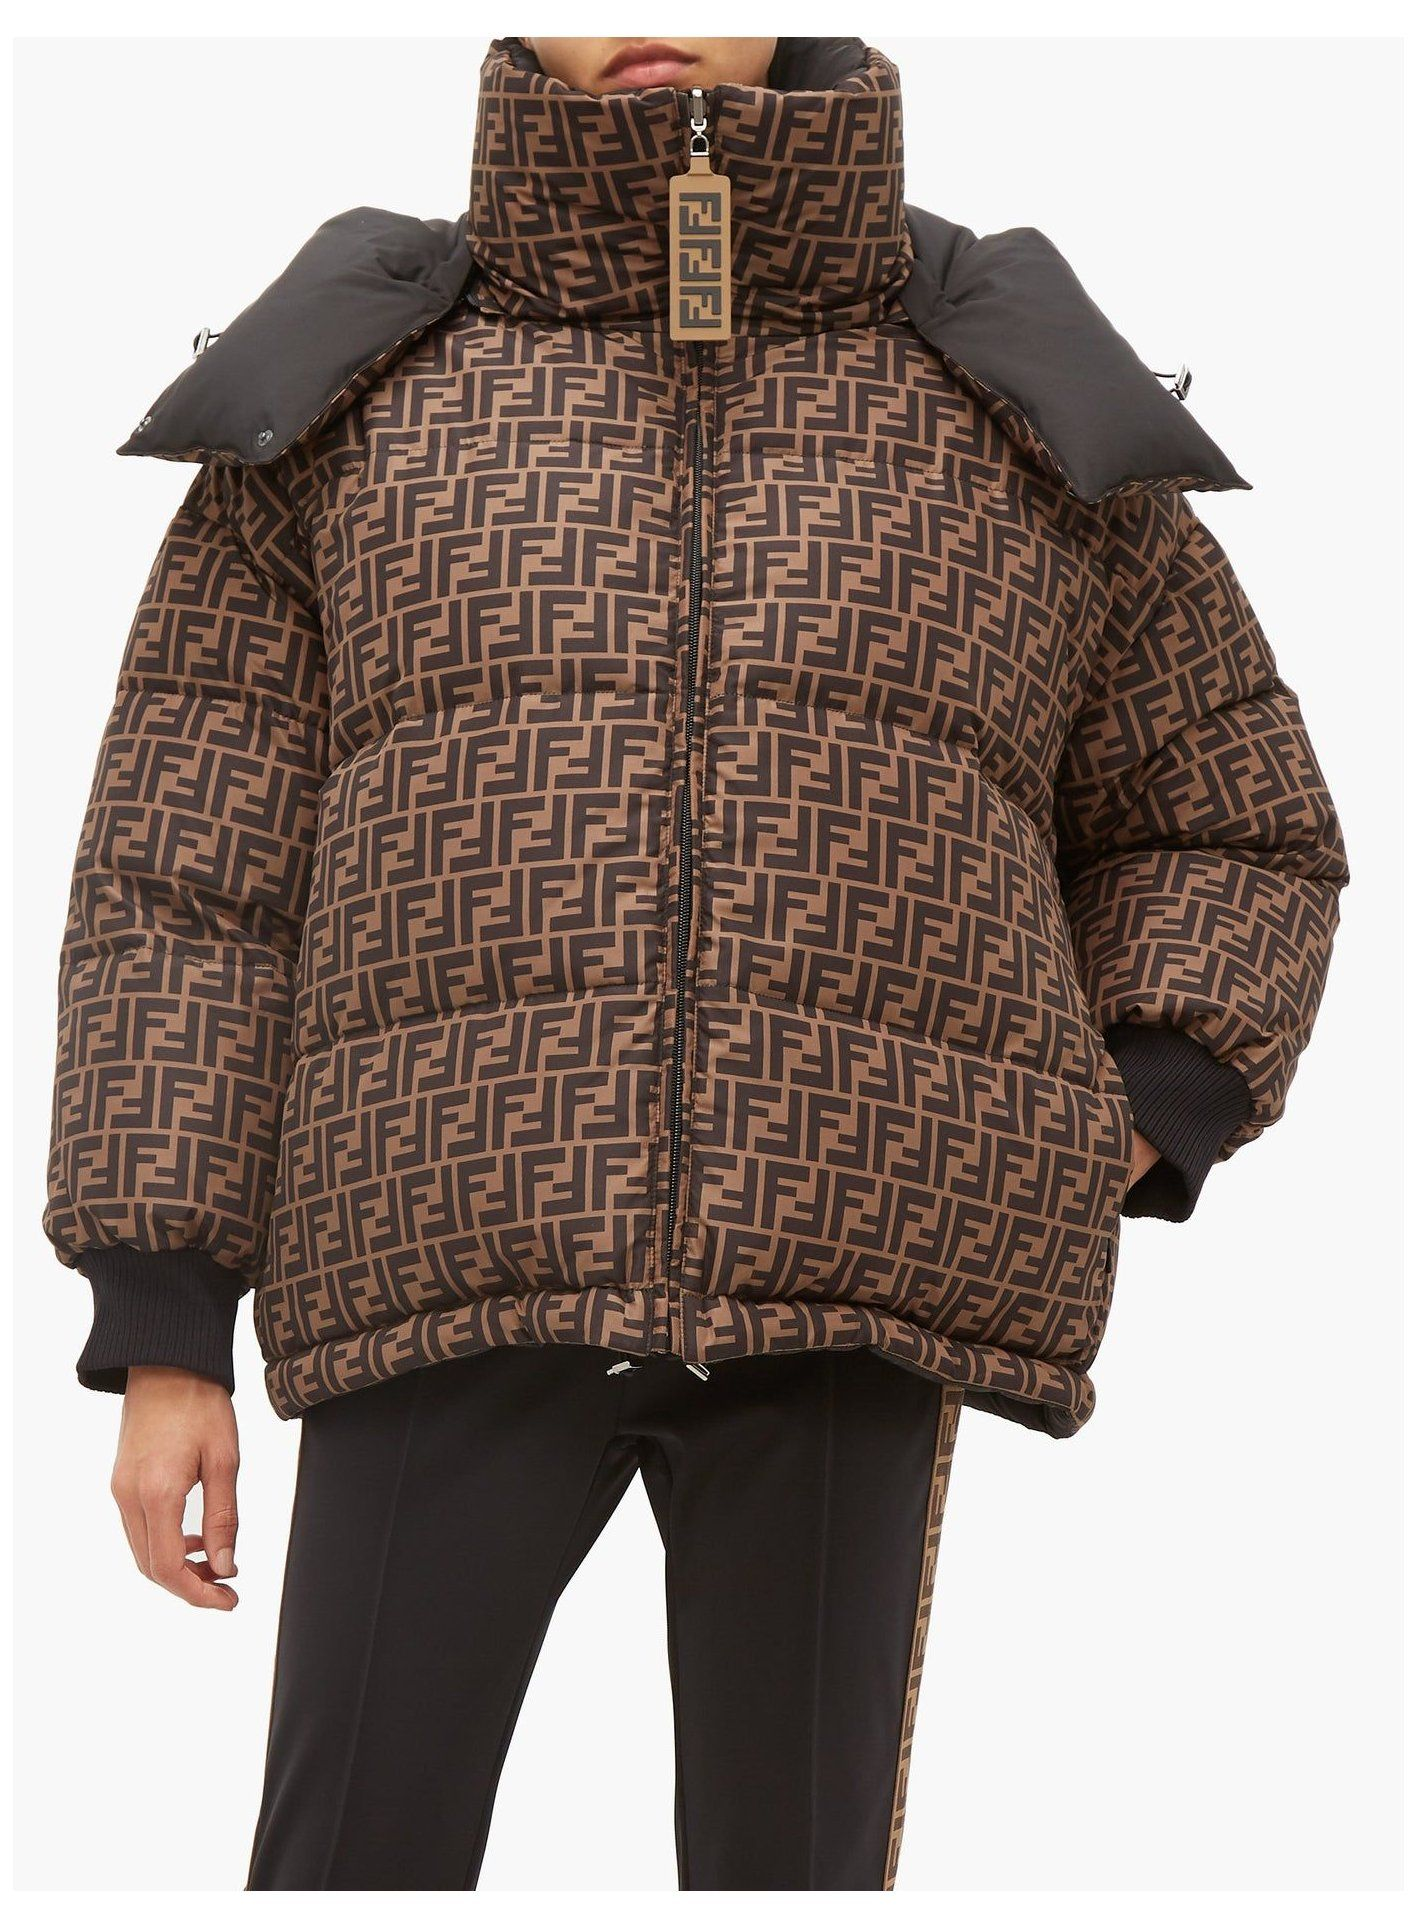 Fendi Fendi Puffer Jacket Fendipufferjacket Fendi Strikes A Contemporary Urban Inspired Note With This Black Reversible Down Jackets Puffer Jackets Clothes [ 1928 x 1417 Pixel ]